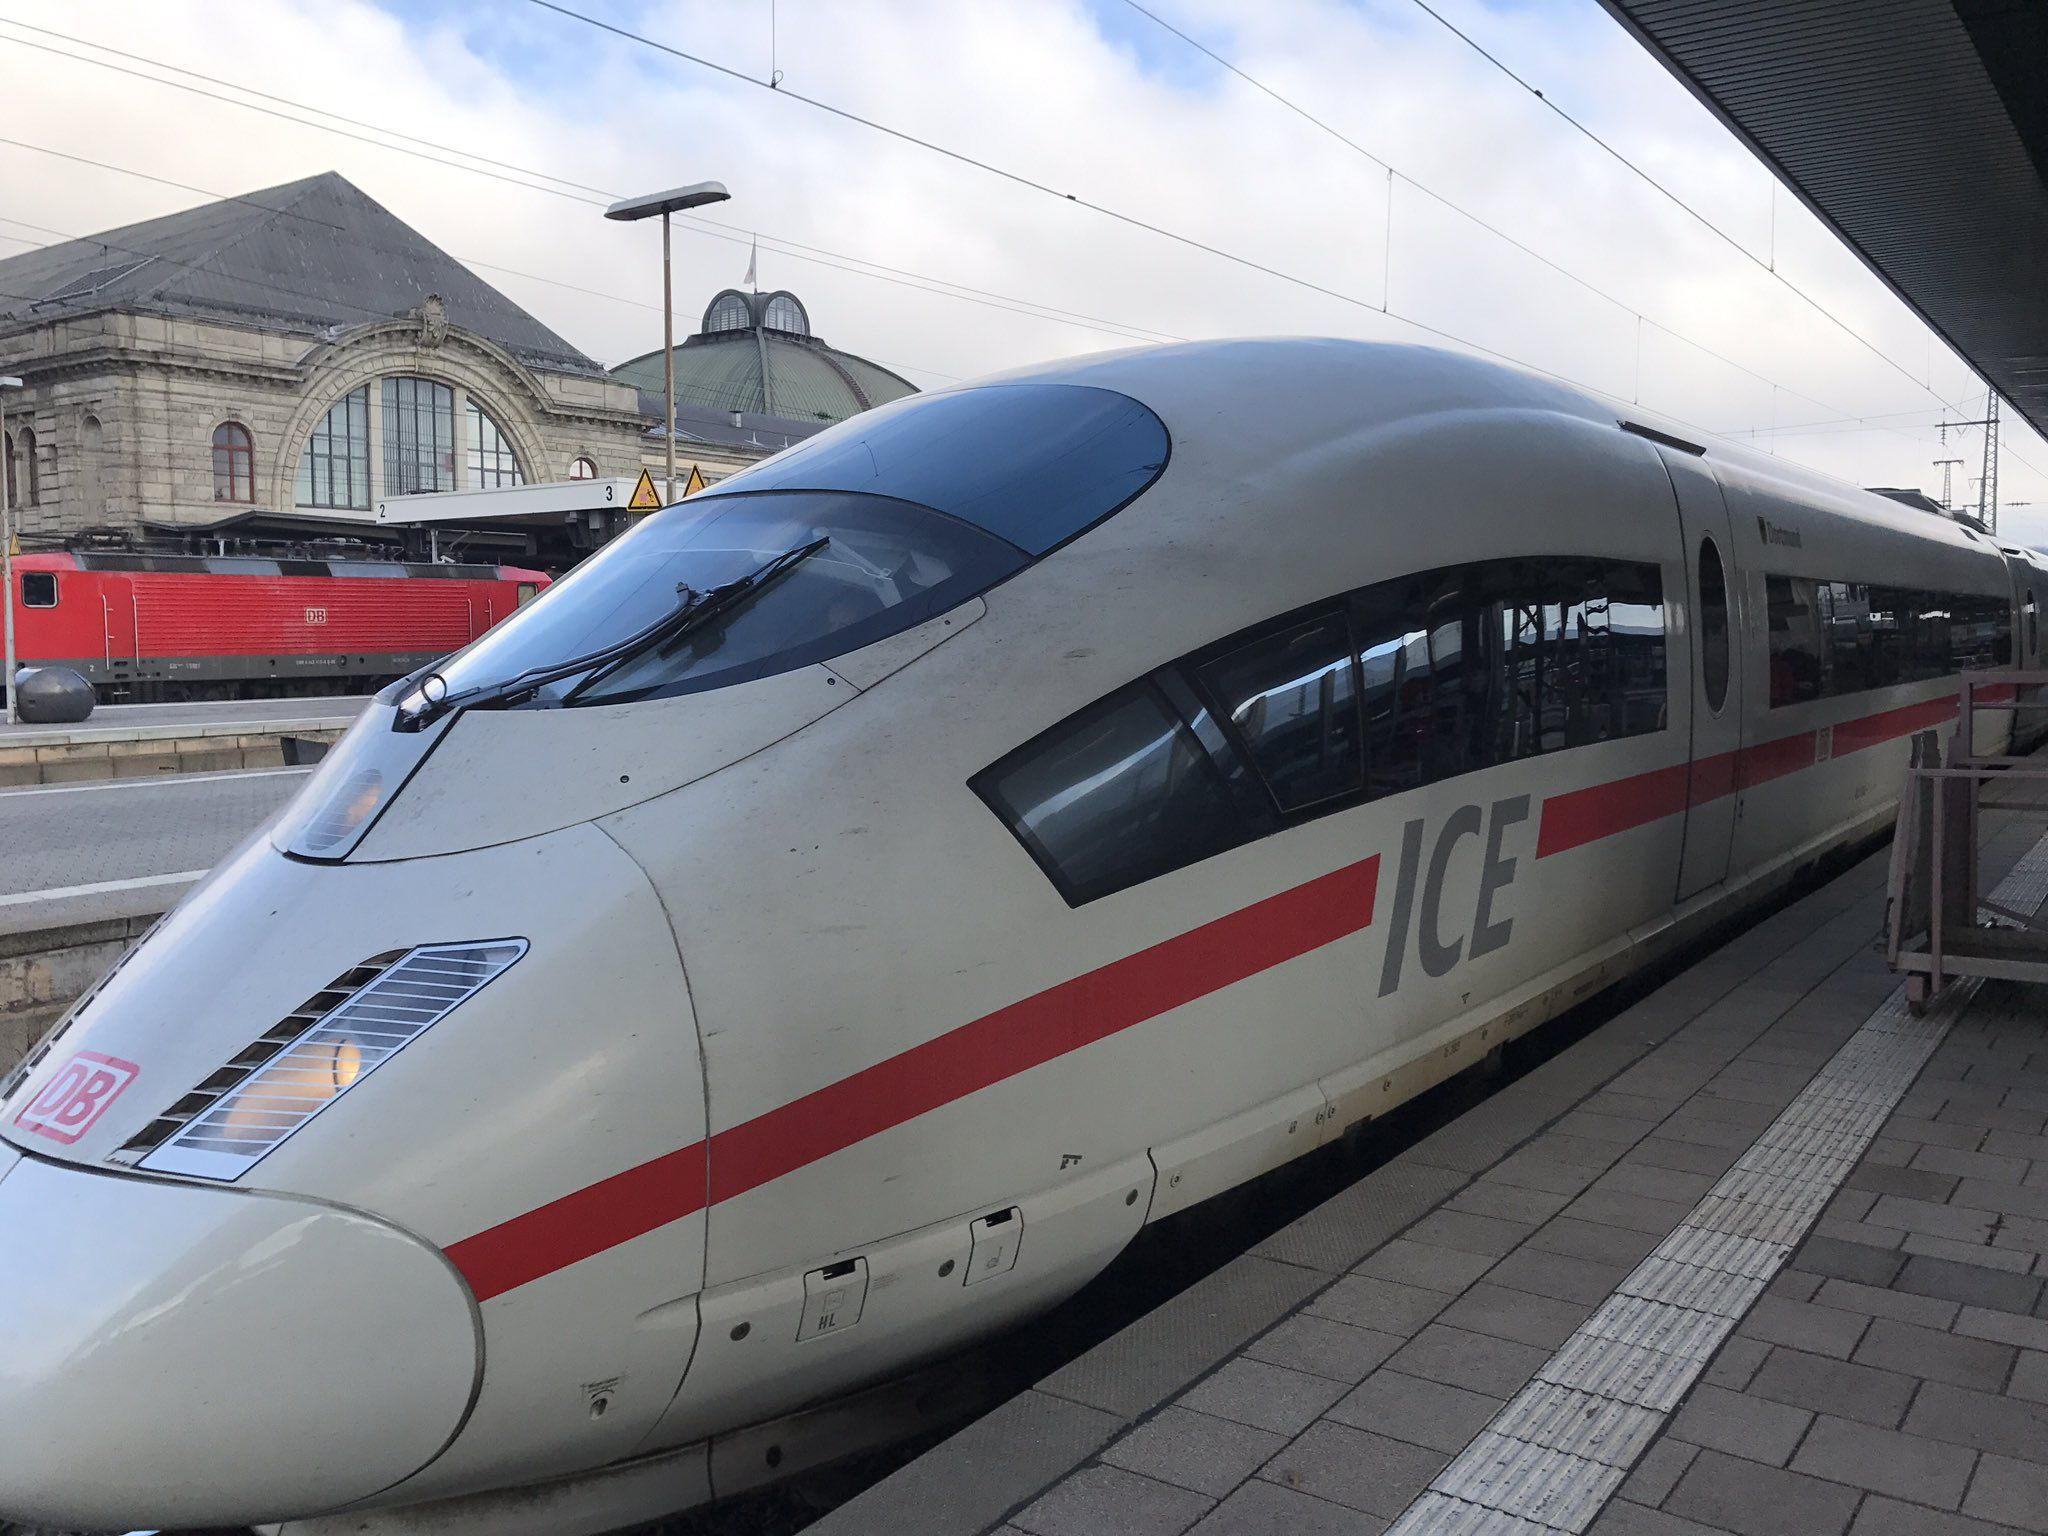 siemens velaro ice 3 db 403 in germany 330 km h deutsche bahn pinterest speed training. Black Bedroom Furniture Sets. Home Design Ideas